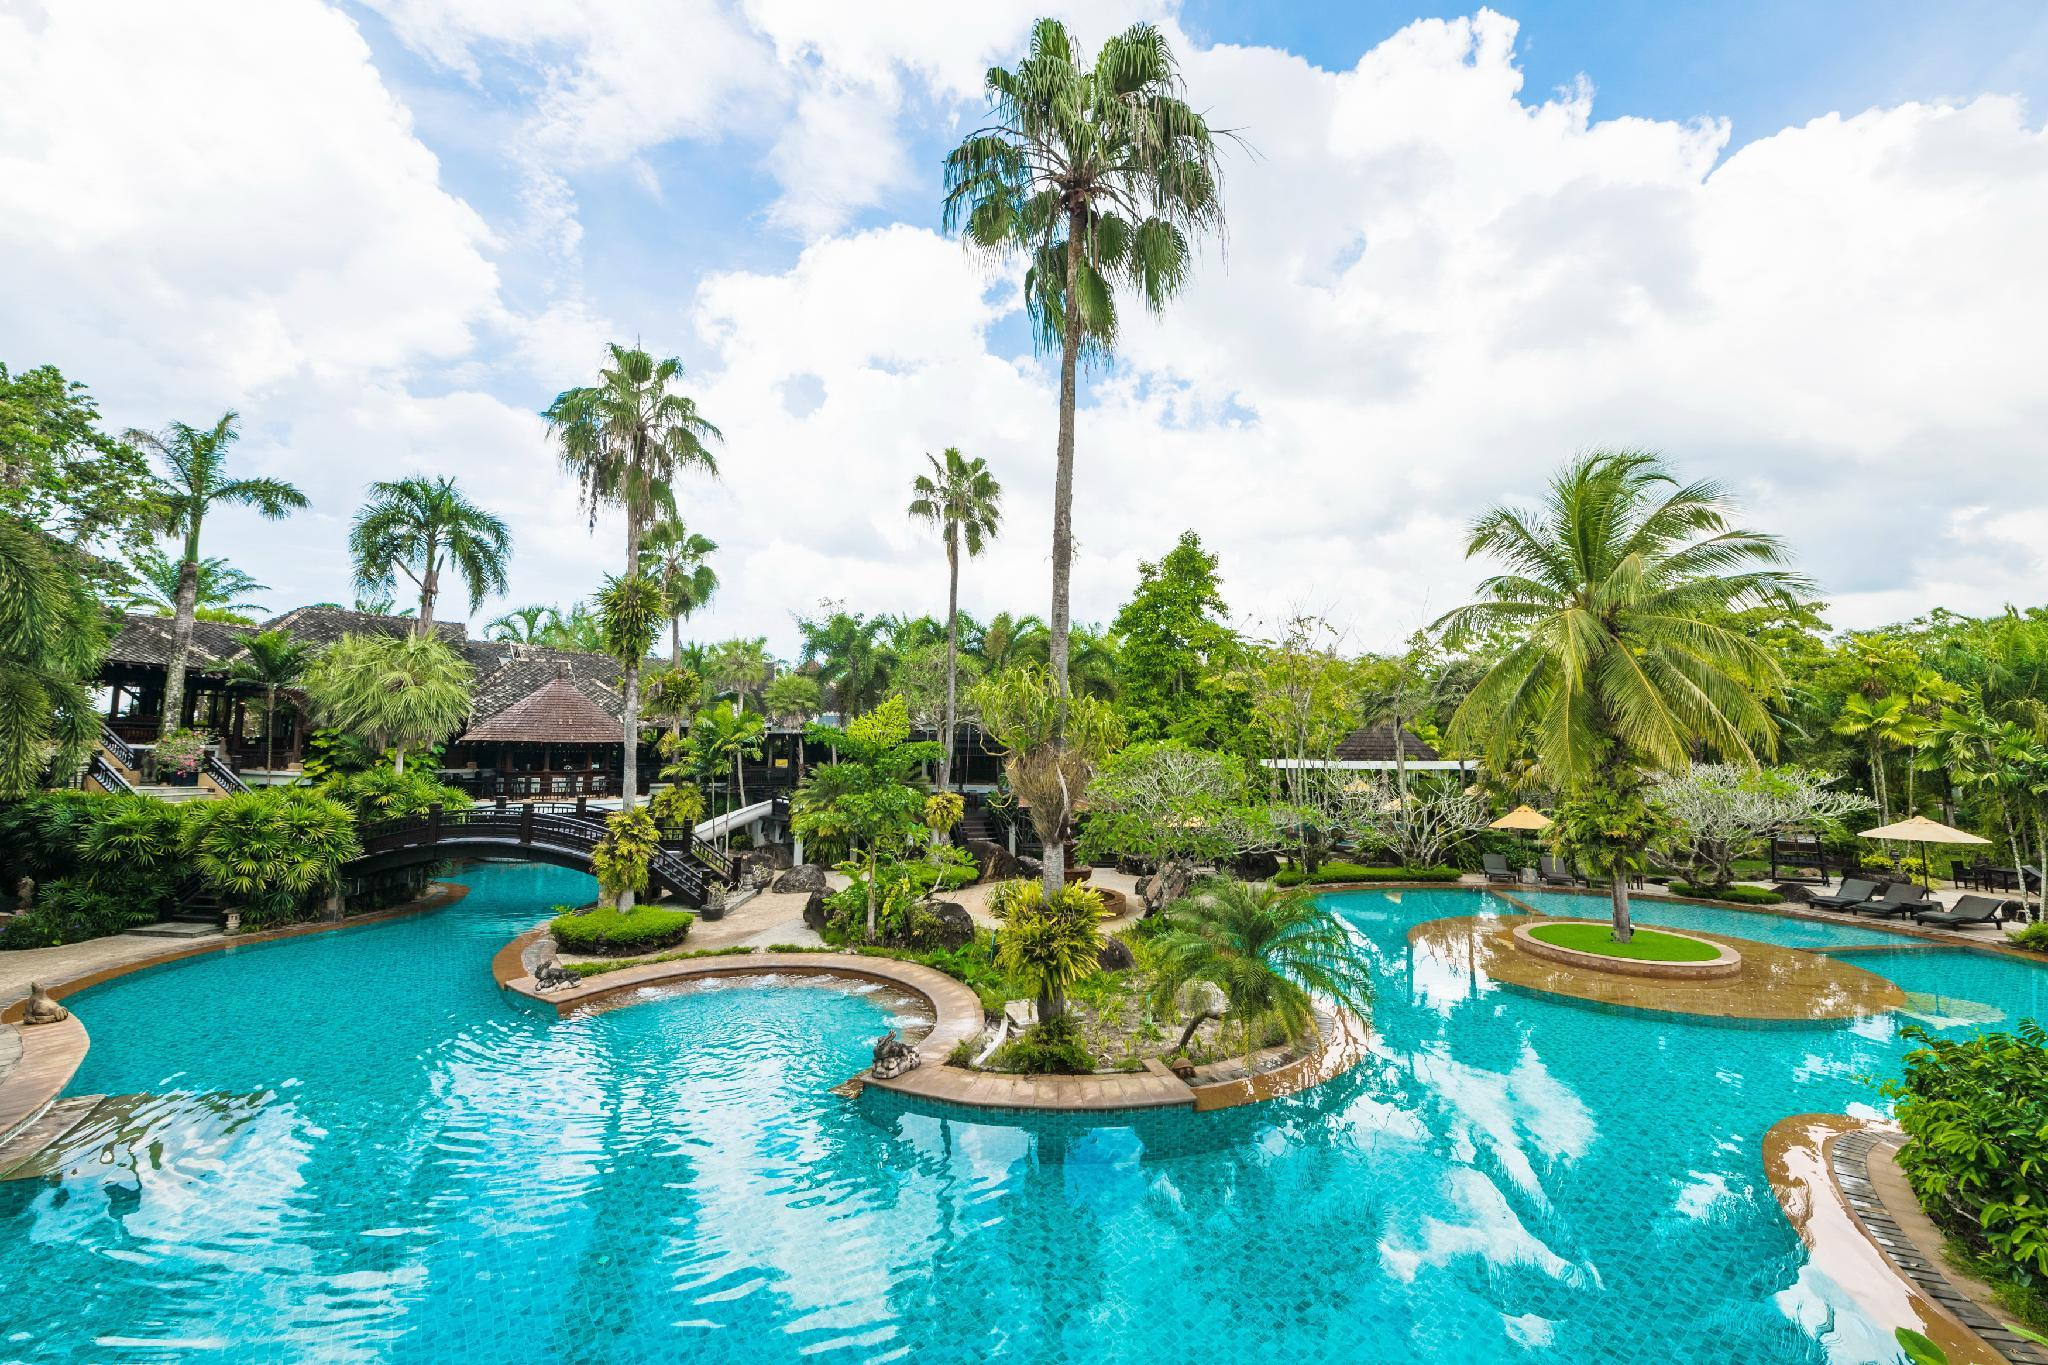 The Hotspring Beach Resort And Spa